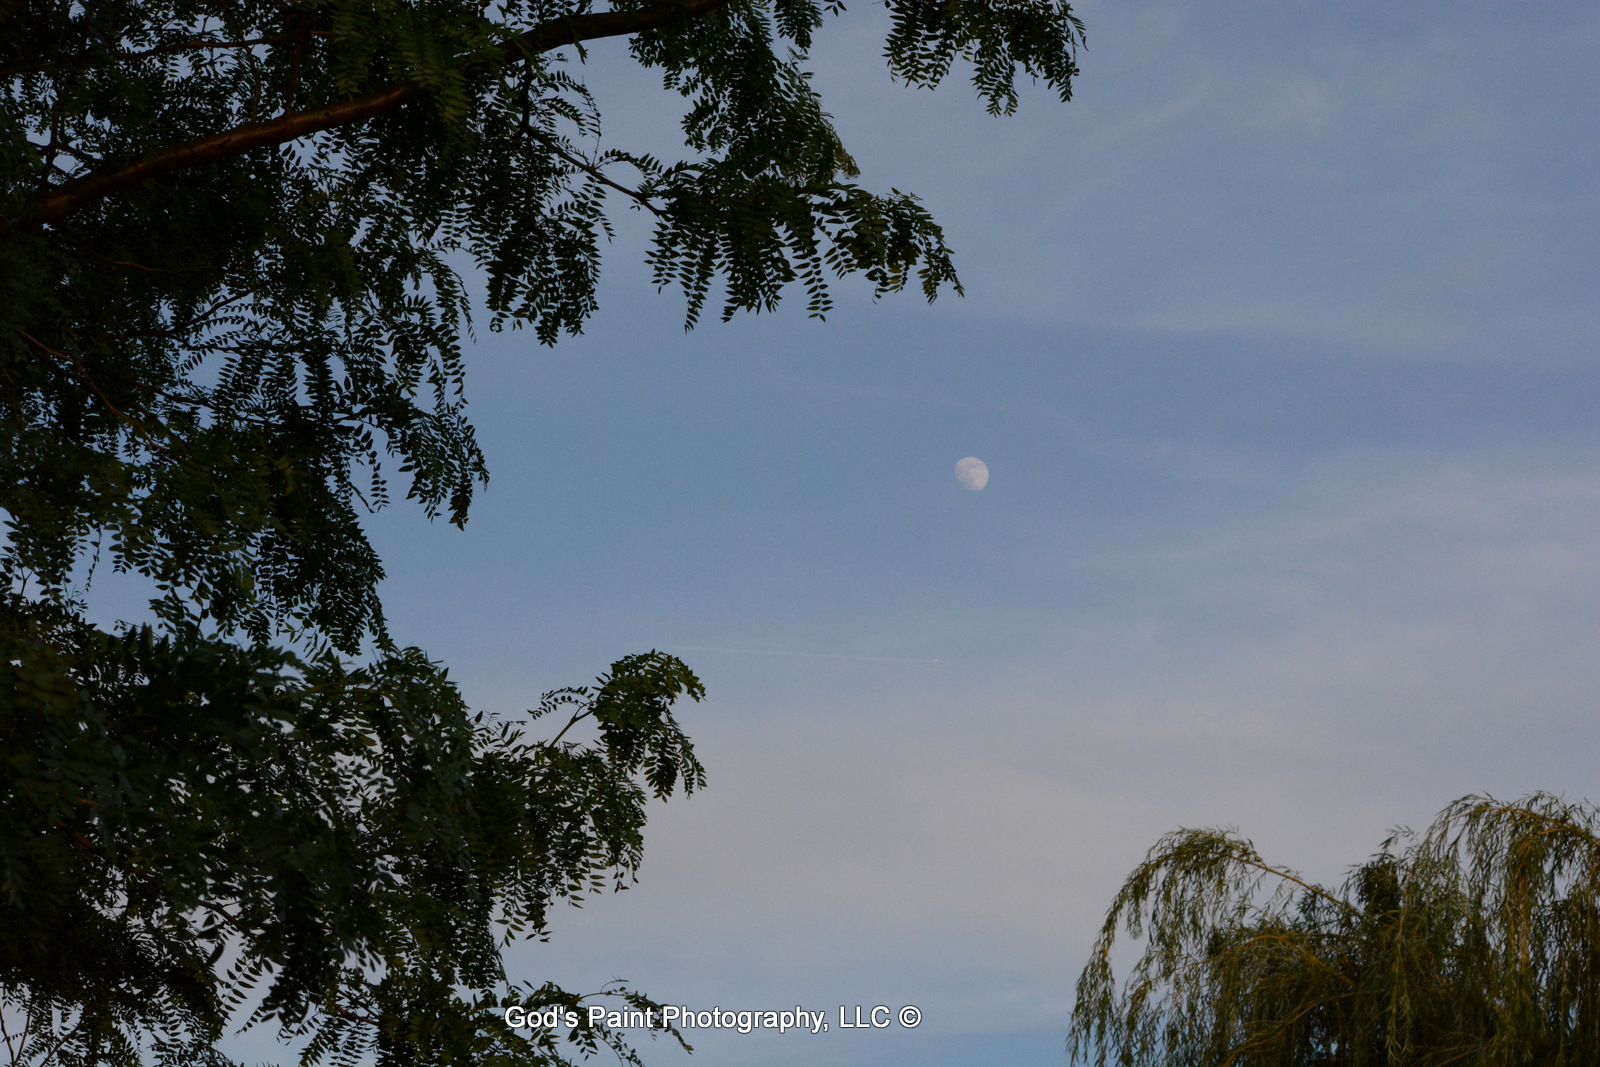 Almost A Full Moon Framed In Trees